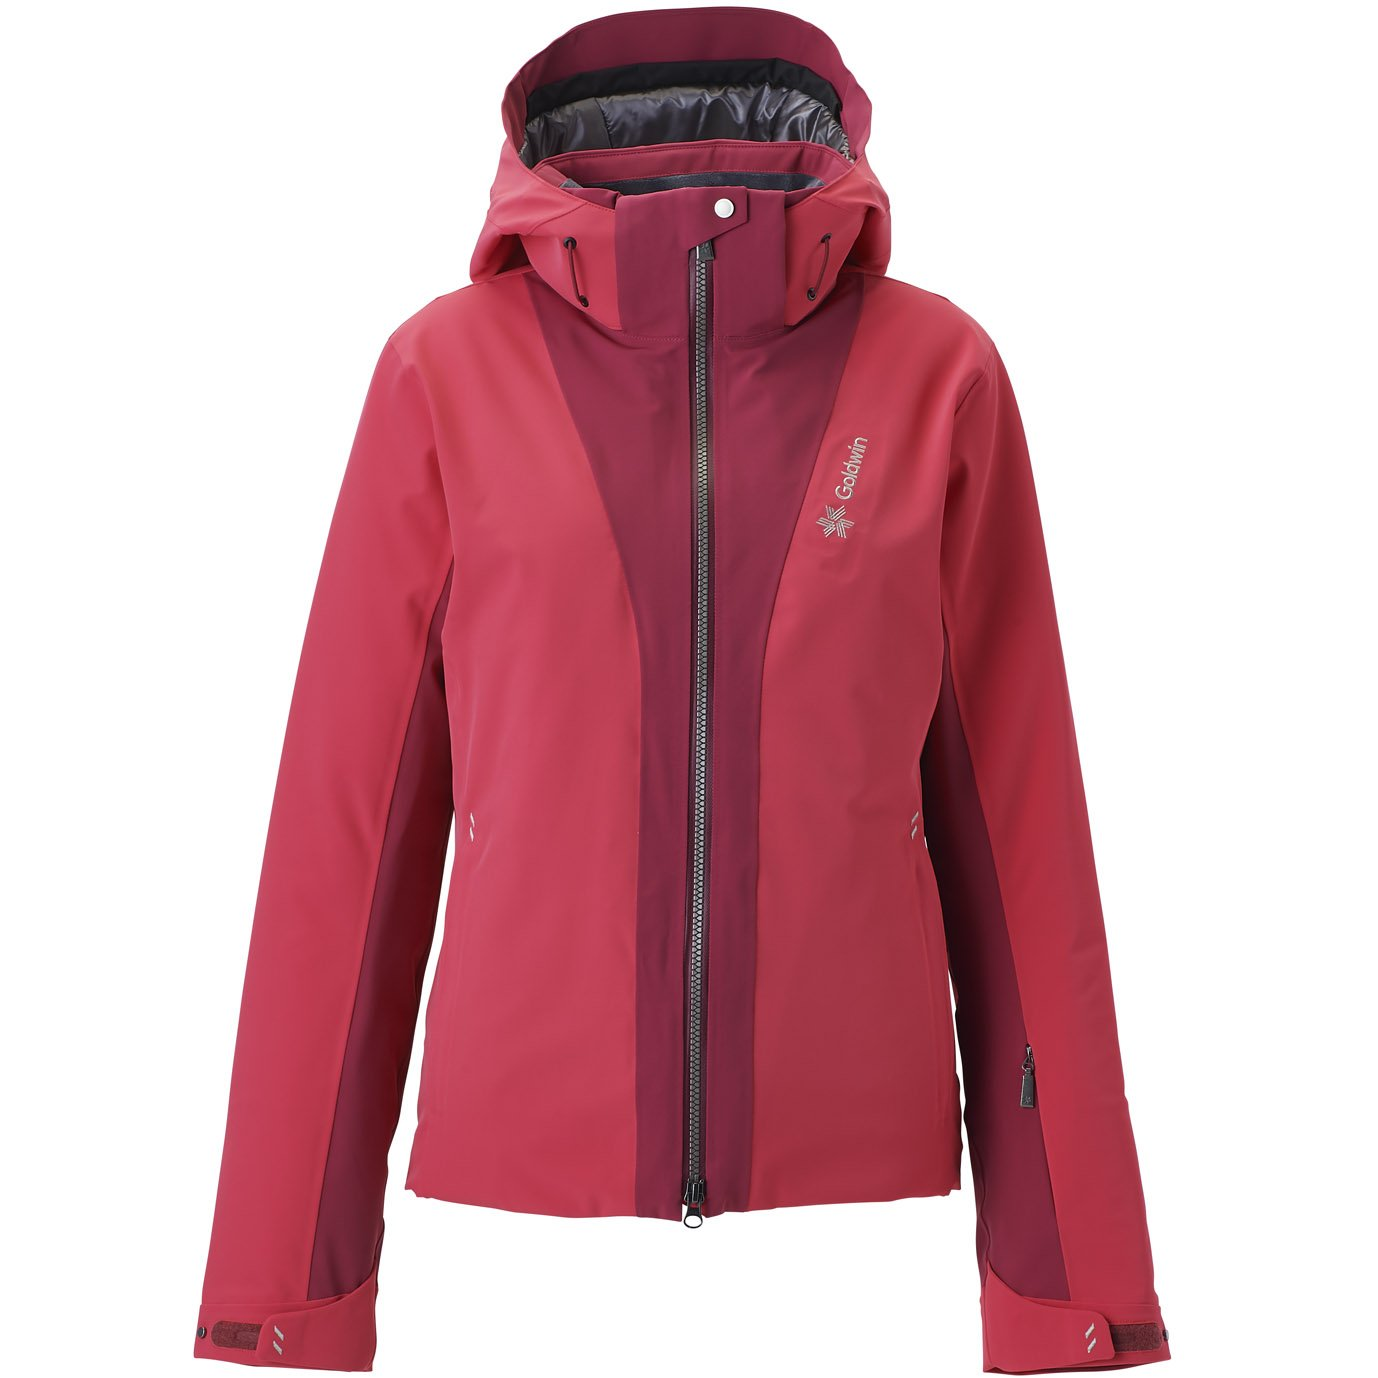 ALBIREO JACKET FRAGOLA RED